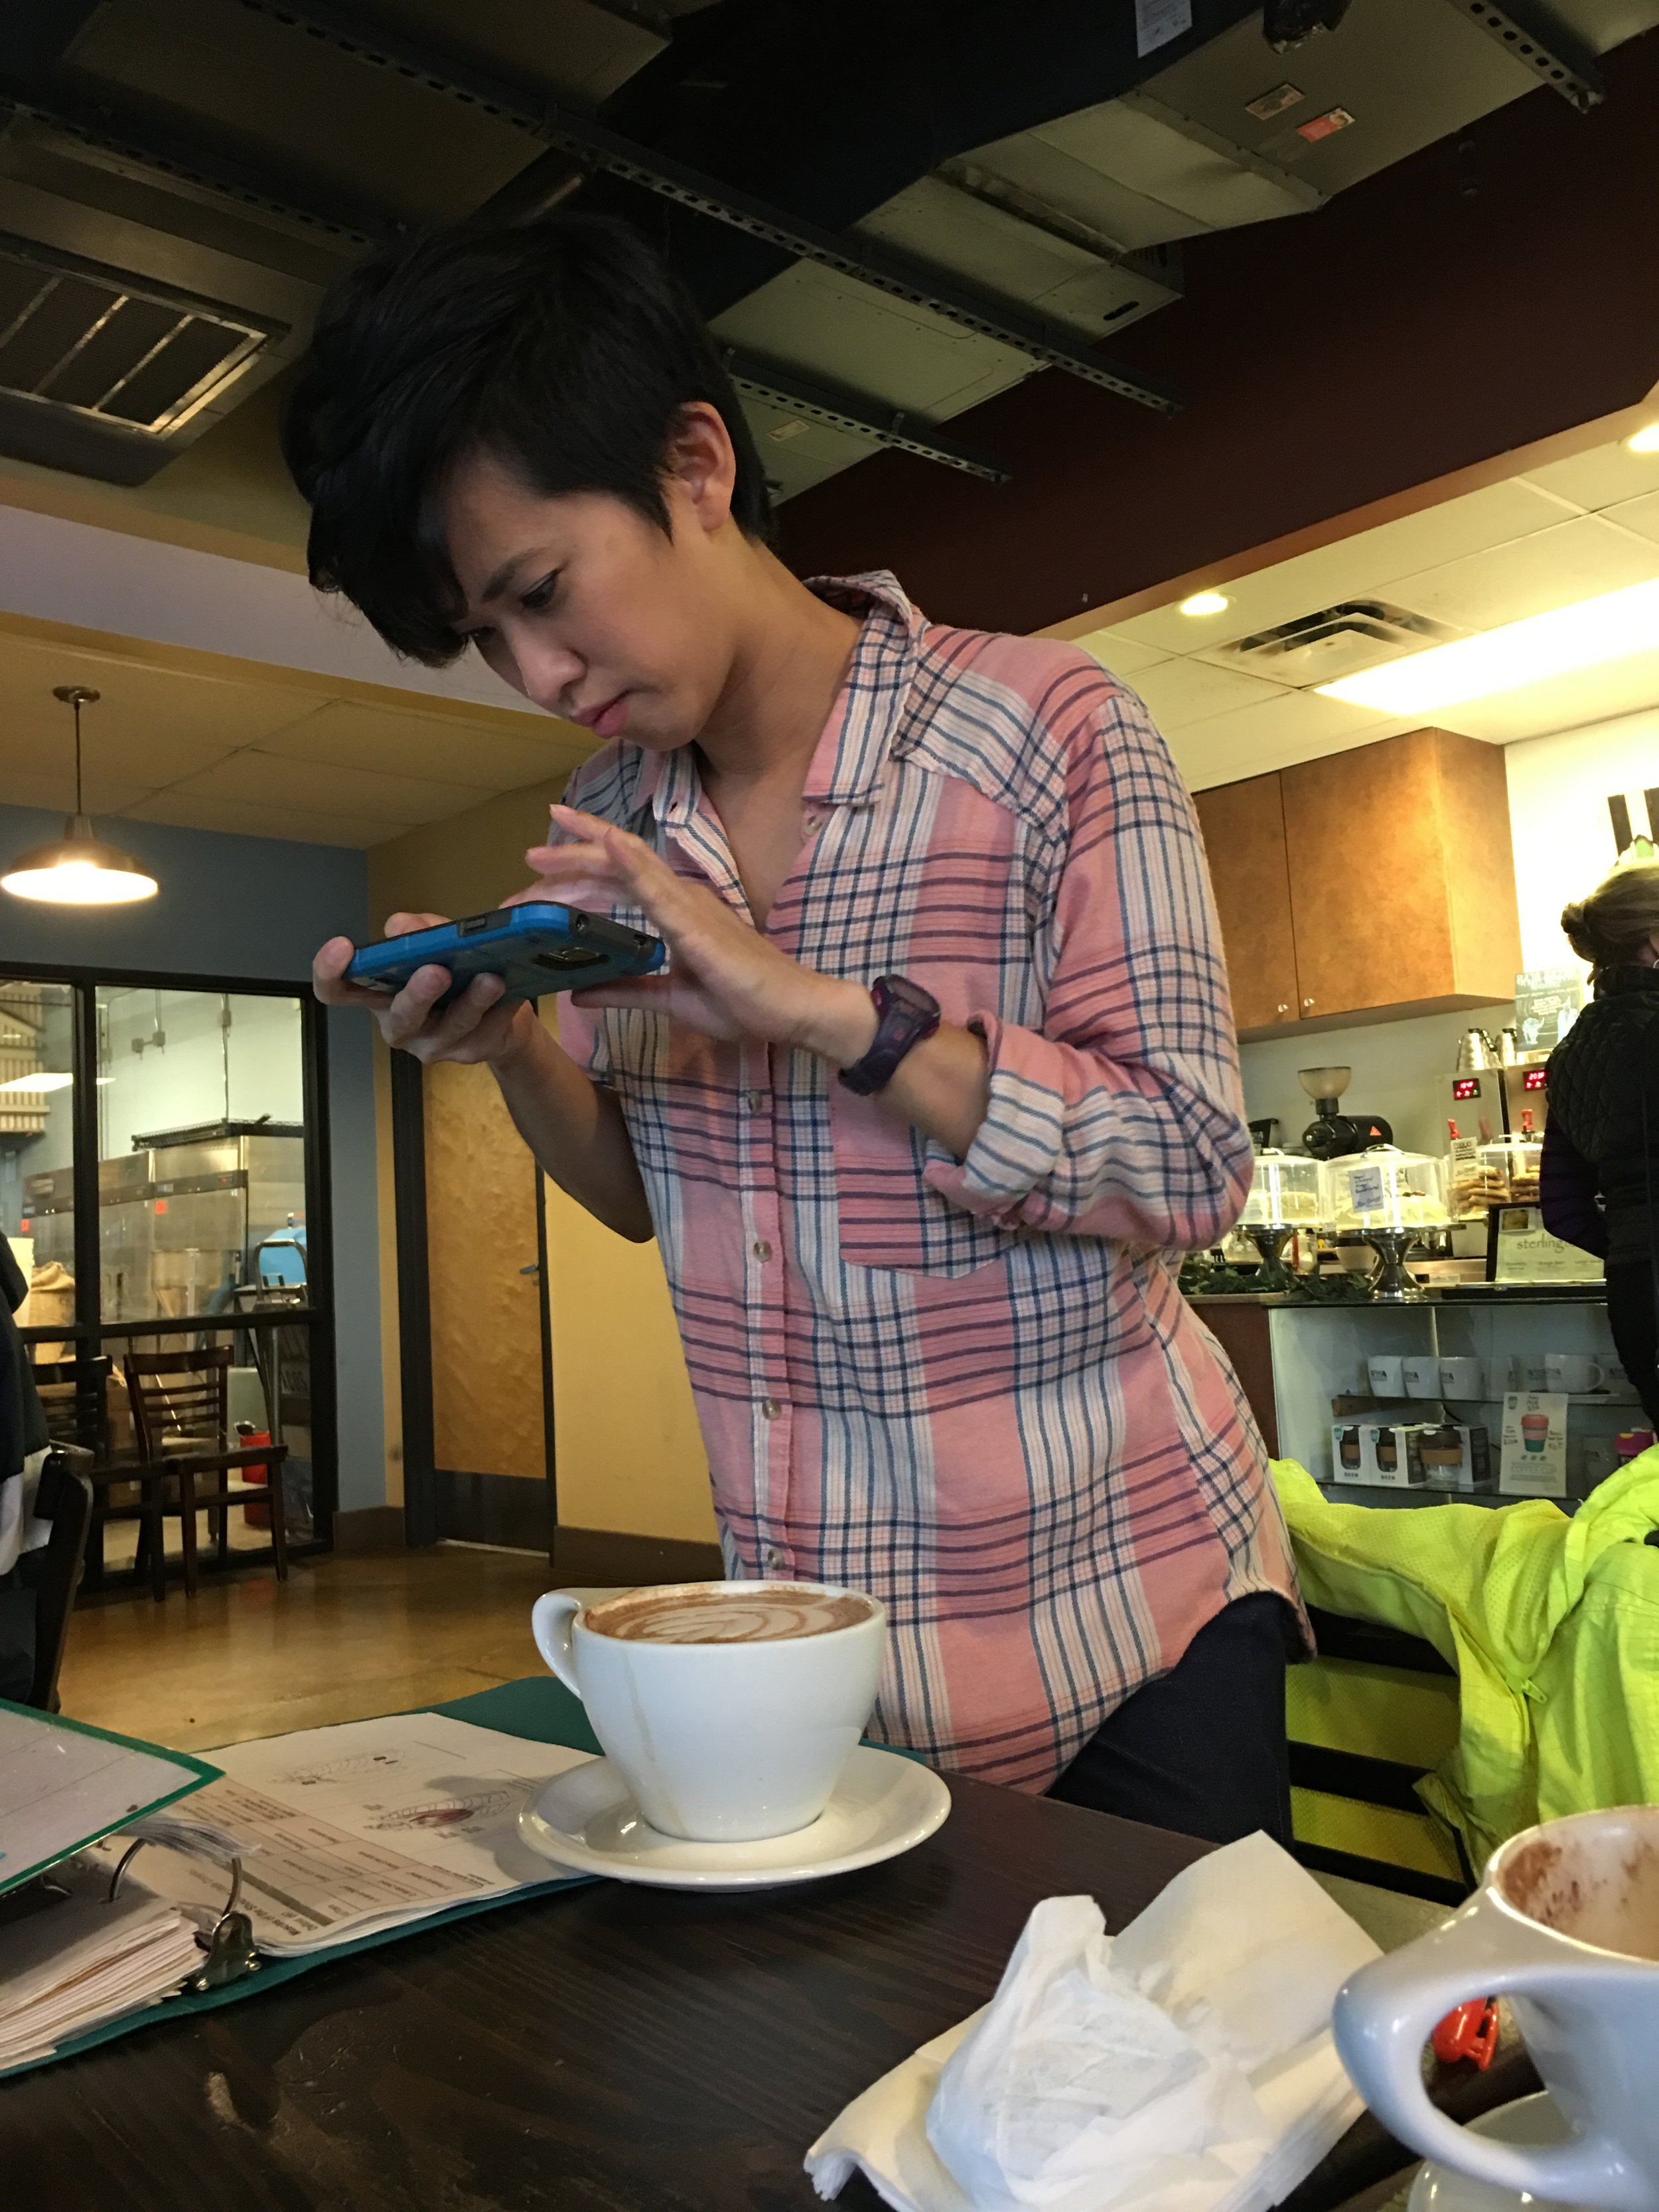 Jessica is capturing pictures of her hot Mocha.